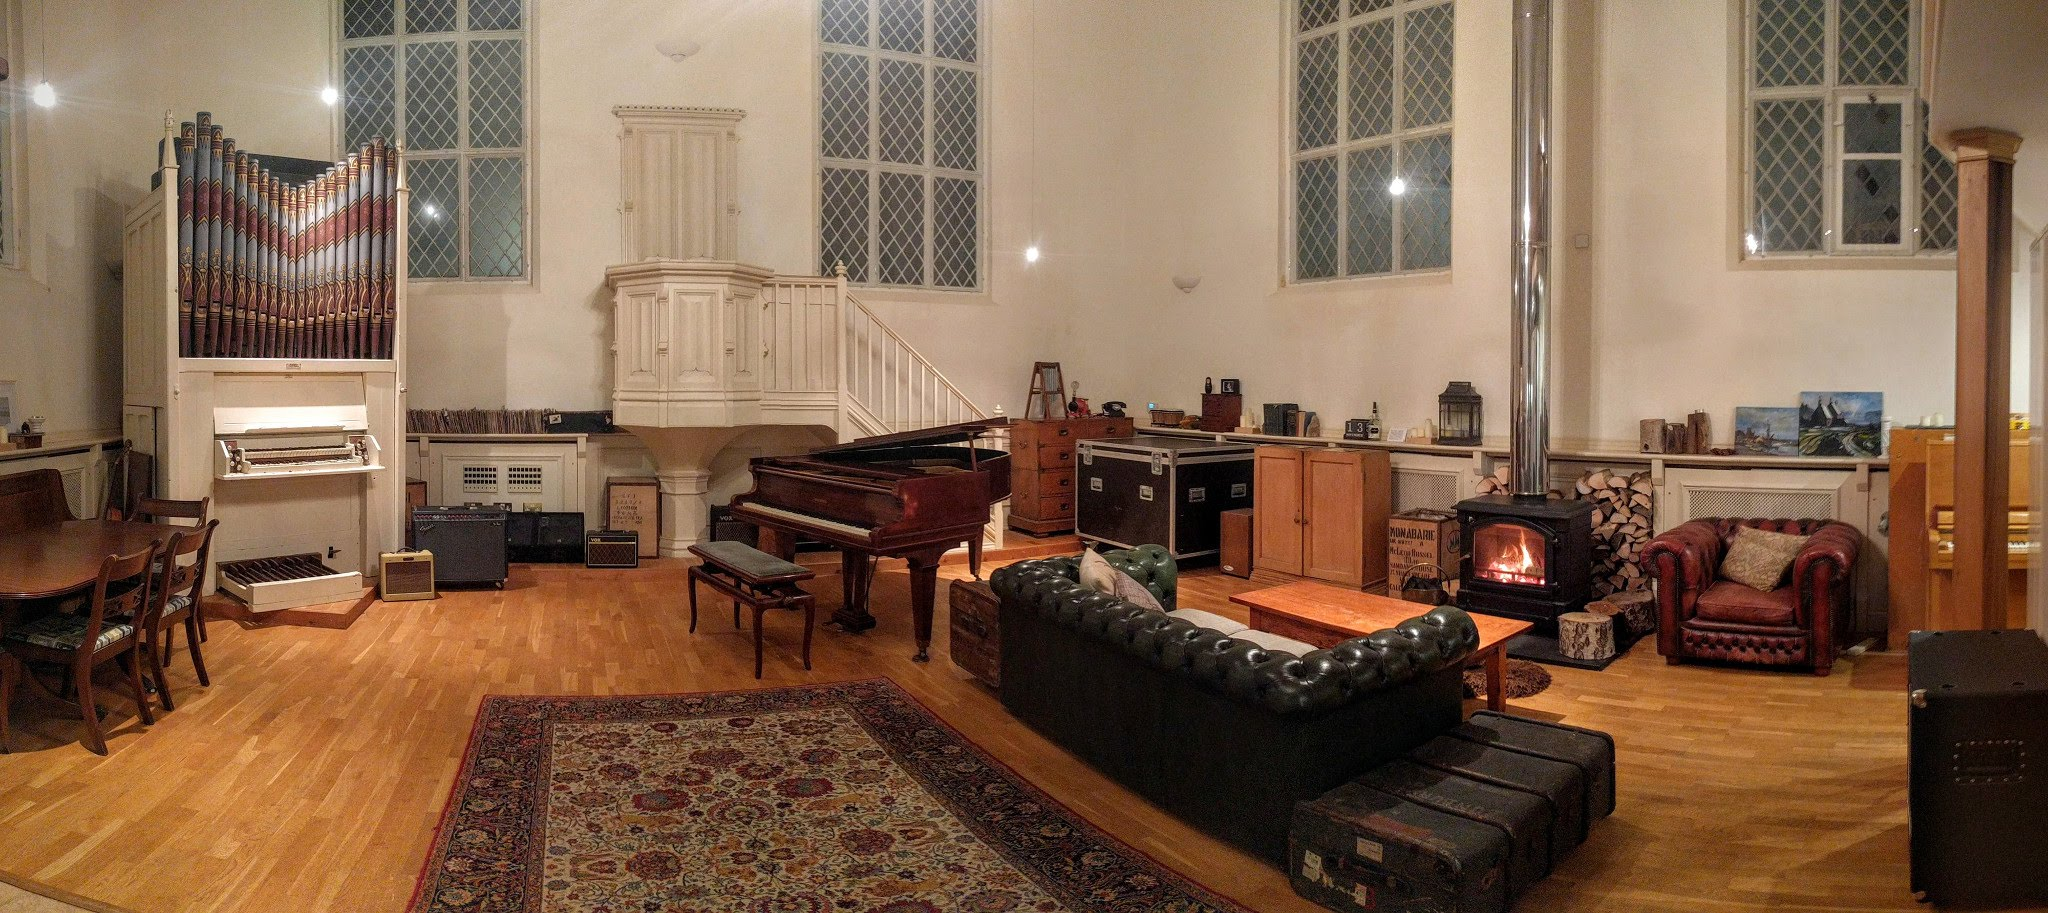 Grand Chapel Studios - Main Room at Night